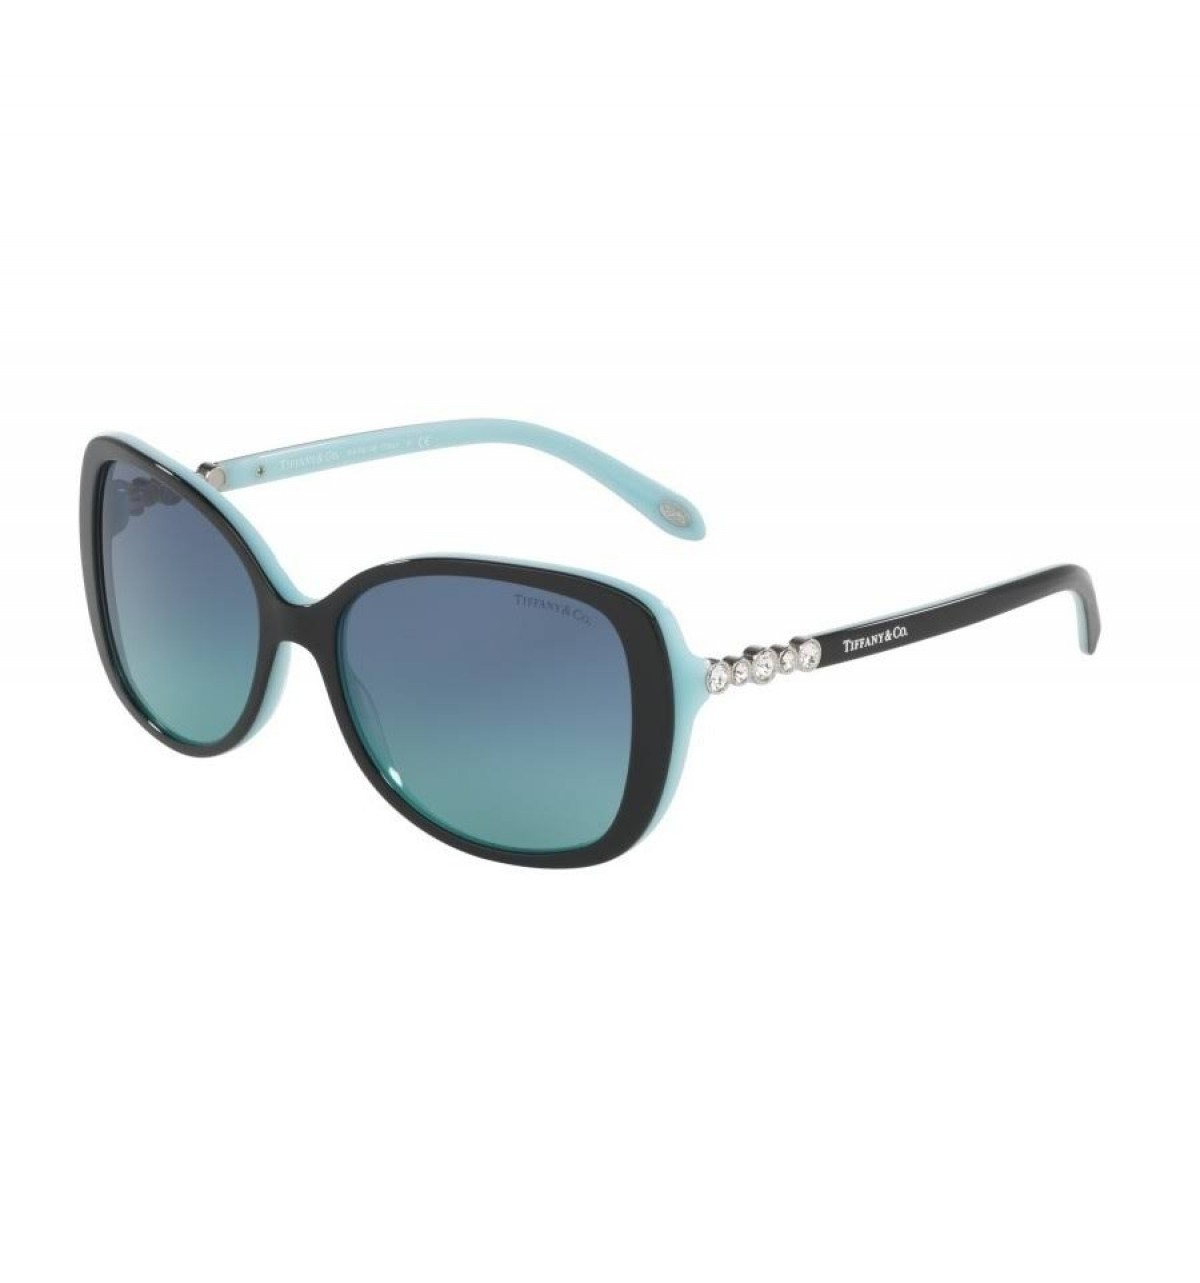 Tiffany & Co. 4121B 80559S 55, 182,37 €, Occhiali Tiffany & Co. Nero a forma Squadrato